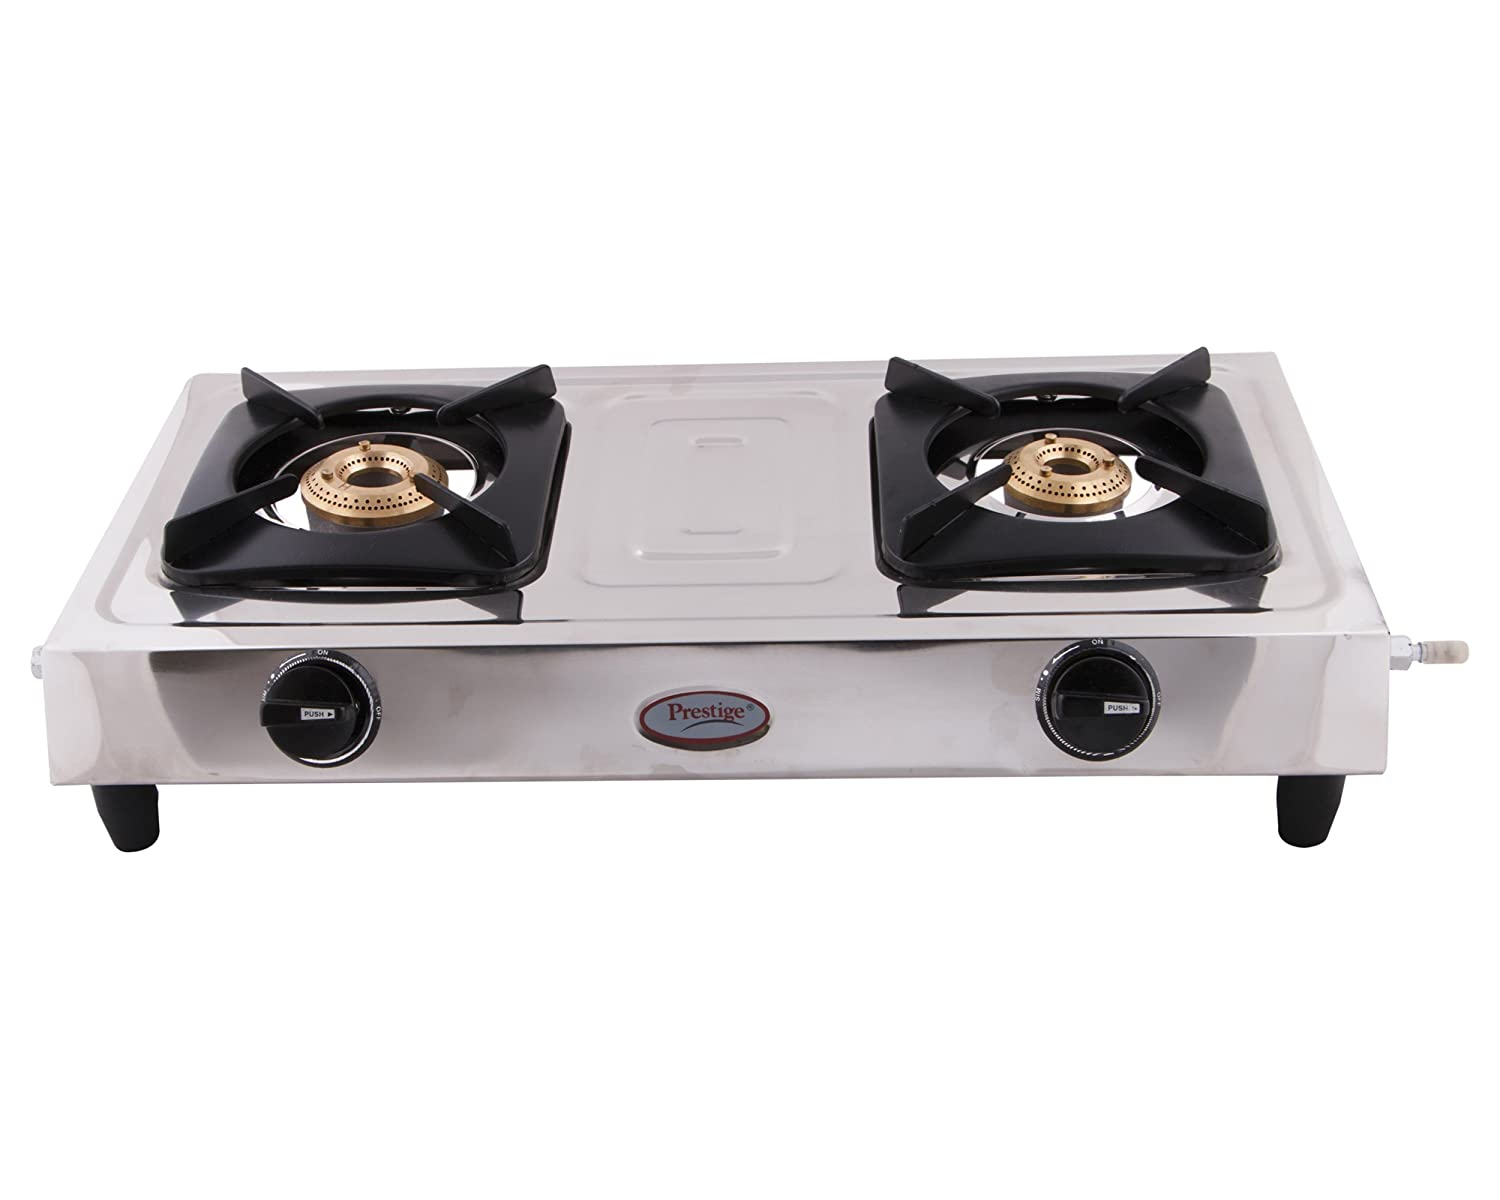 buy prestige star stainless steel 2 burner gas stove metallic silver online at low prices in india amazonin